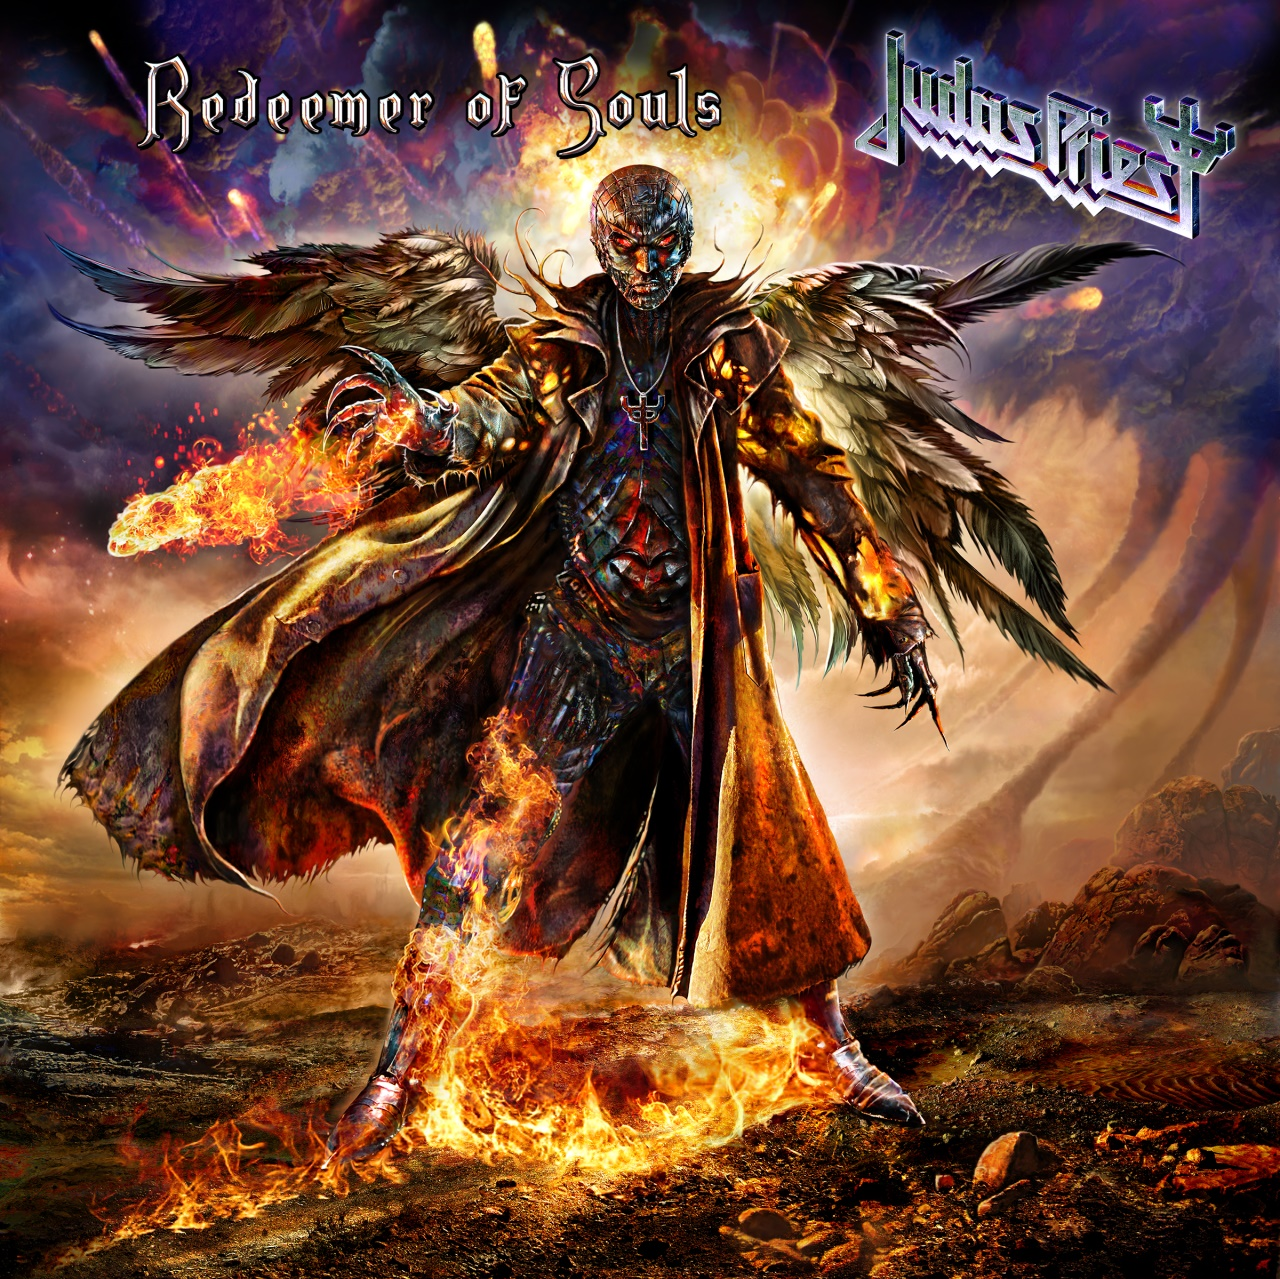 Judas Priest - Redeemer of Souls (Deluxe Version)